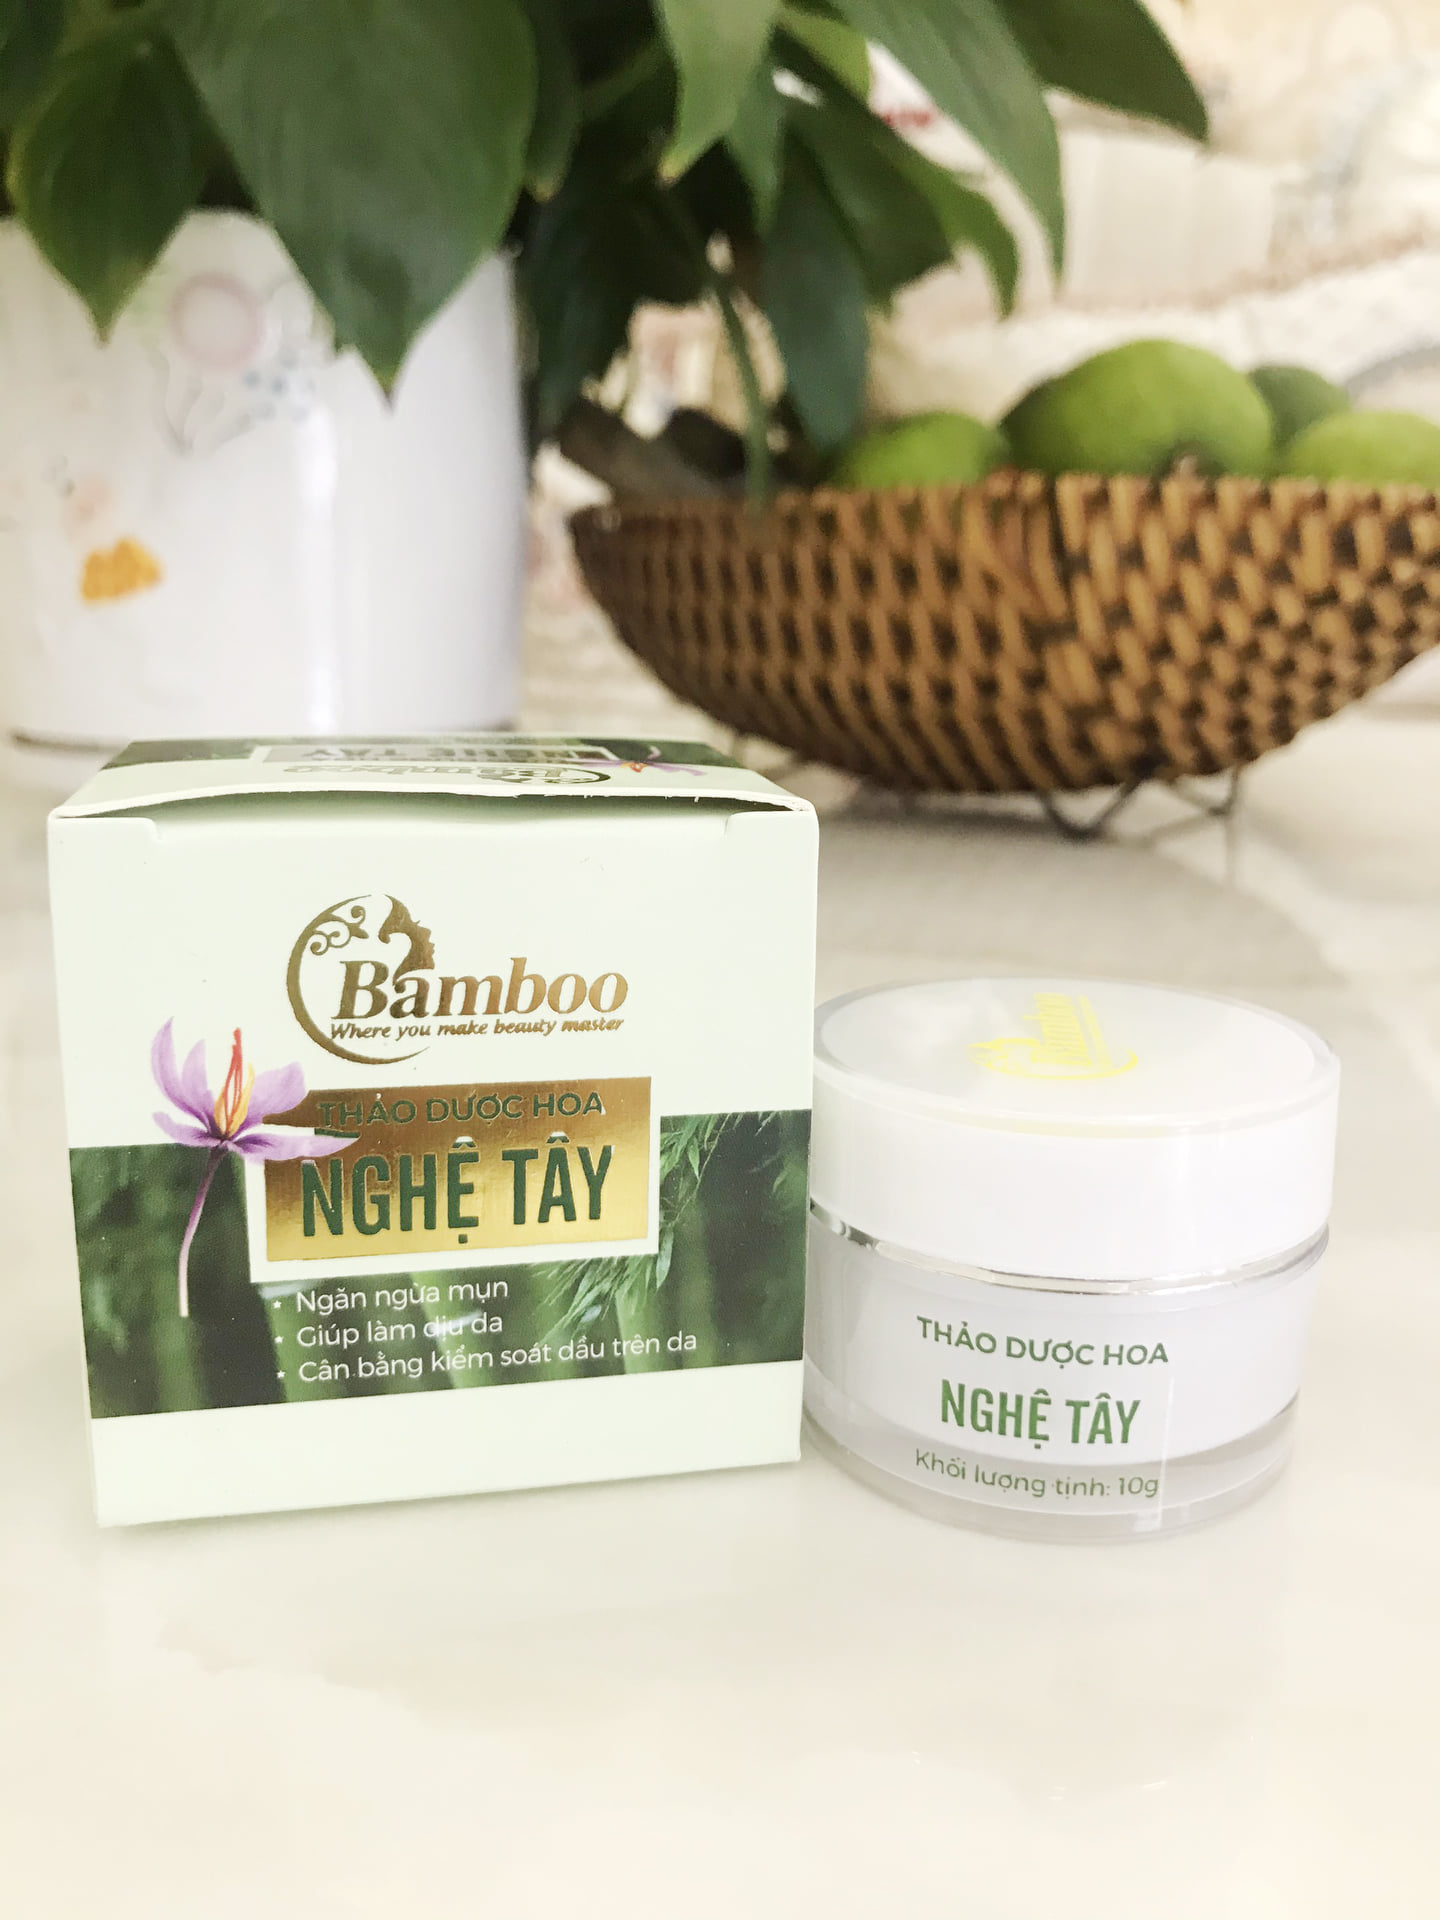 Review th畉� d動畛� hoa ngh畛�t但y Bamboo